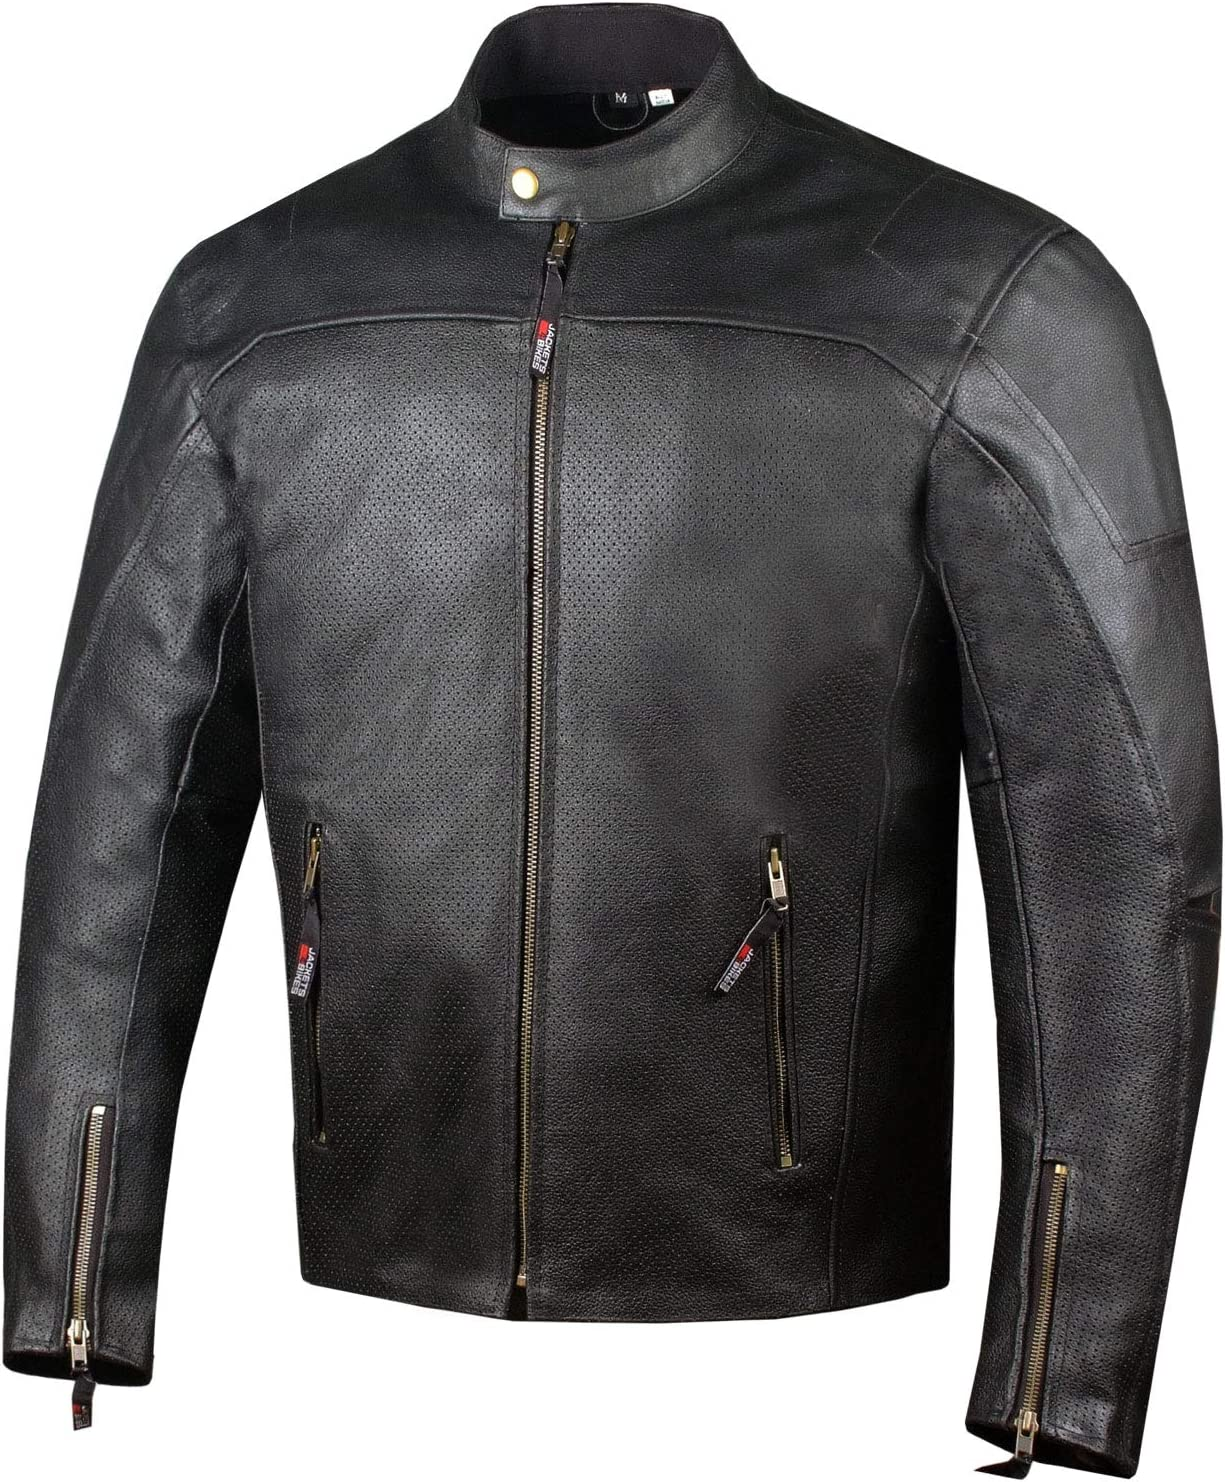 Mens Airflow Perforated Leather Protected Motorcycle CE Armor Biker Jacket XXL